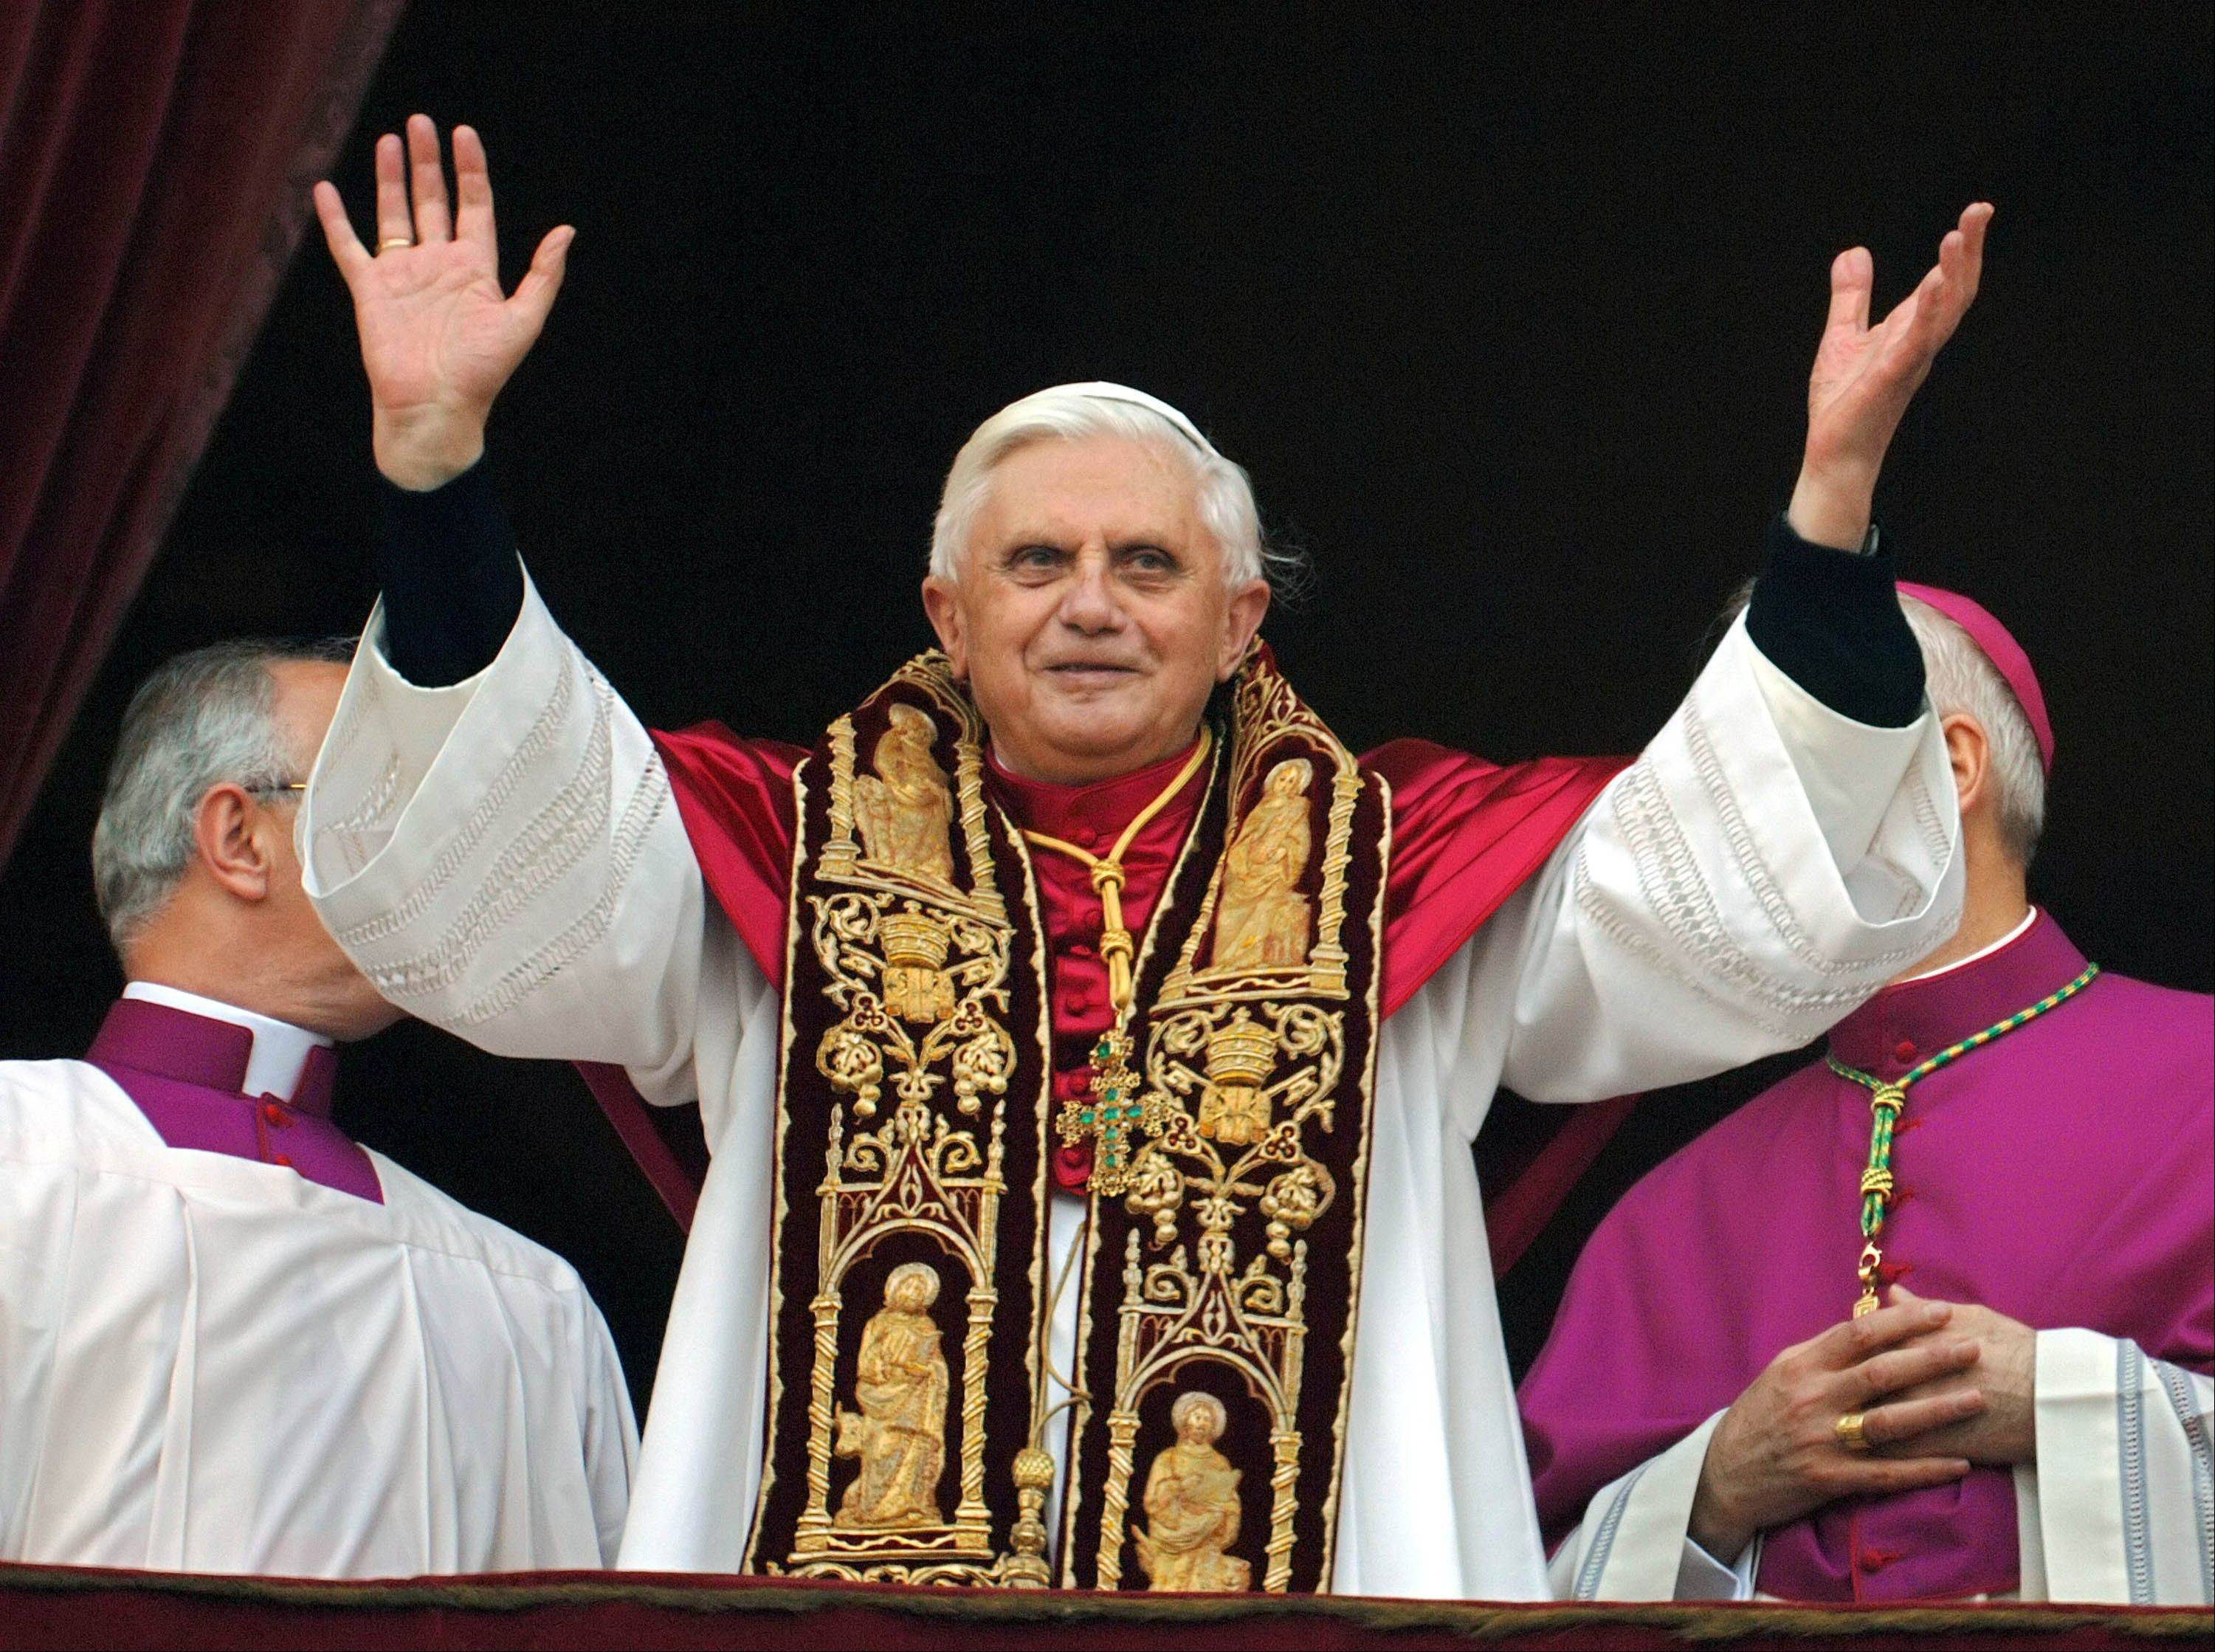 Pope Benedict XVI greeting the crowd from the central balcony of St. Peter's Basilica moments after being elected at the Vatican.